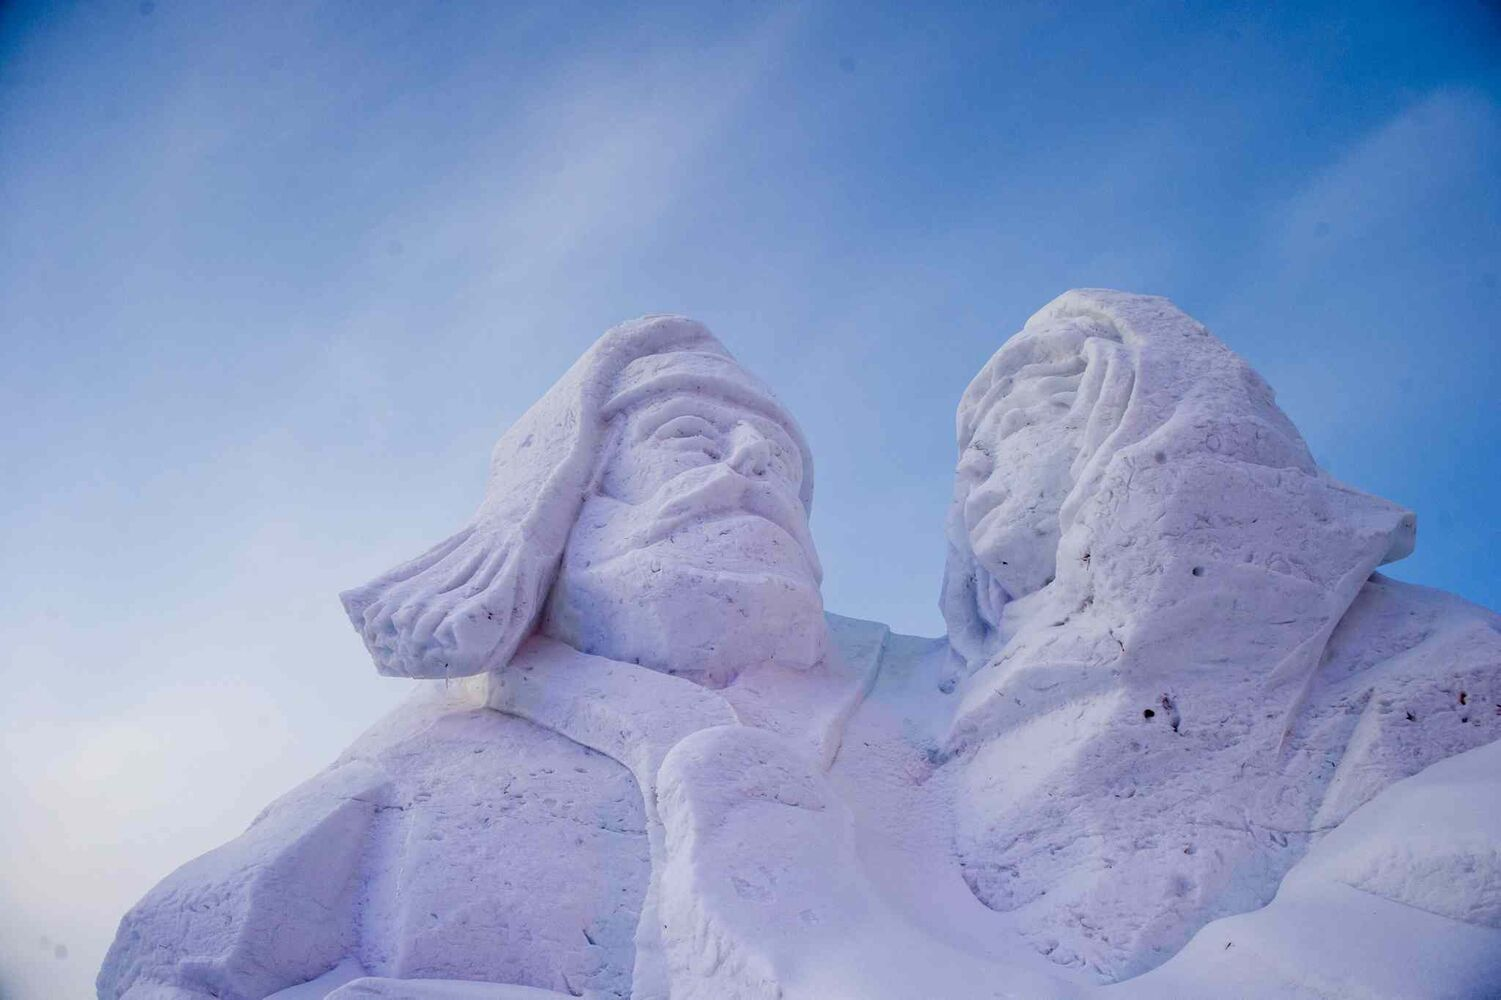 It was perfect weather for Festival du Voyageur's snow sculptures on Saturday.